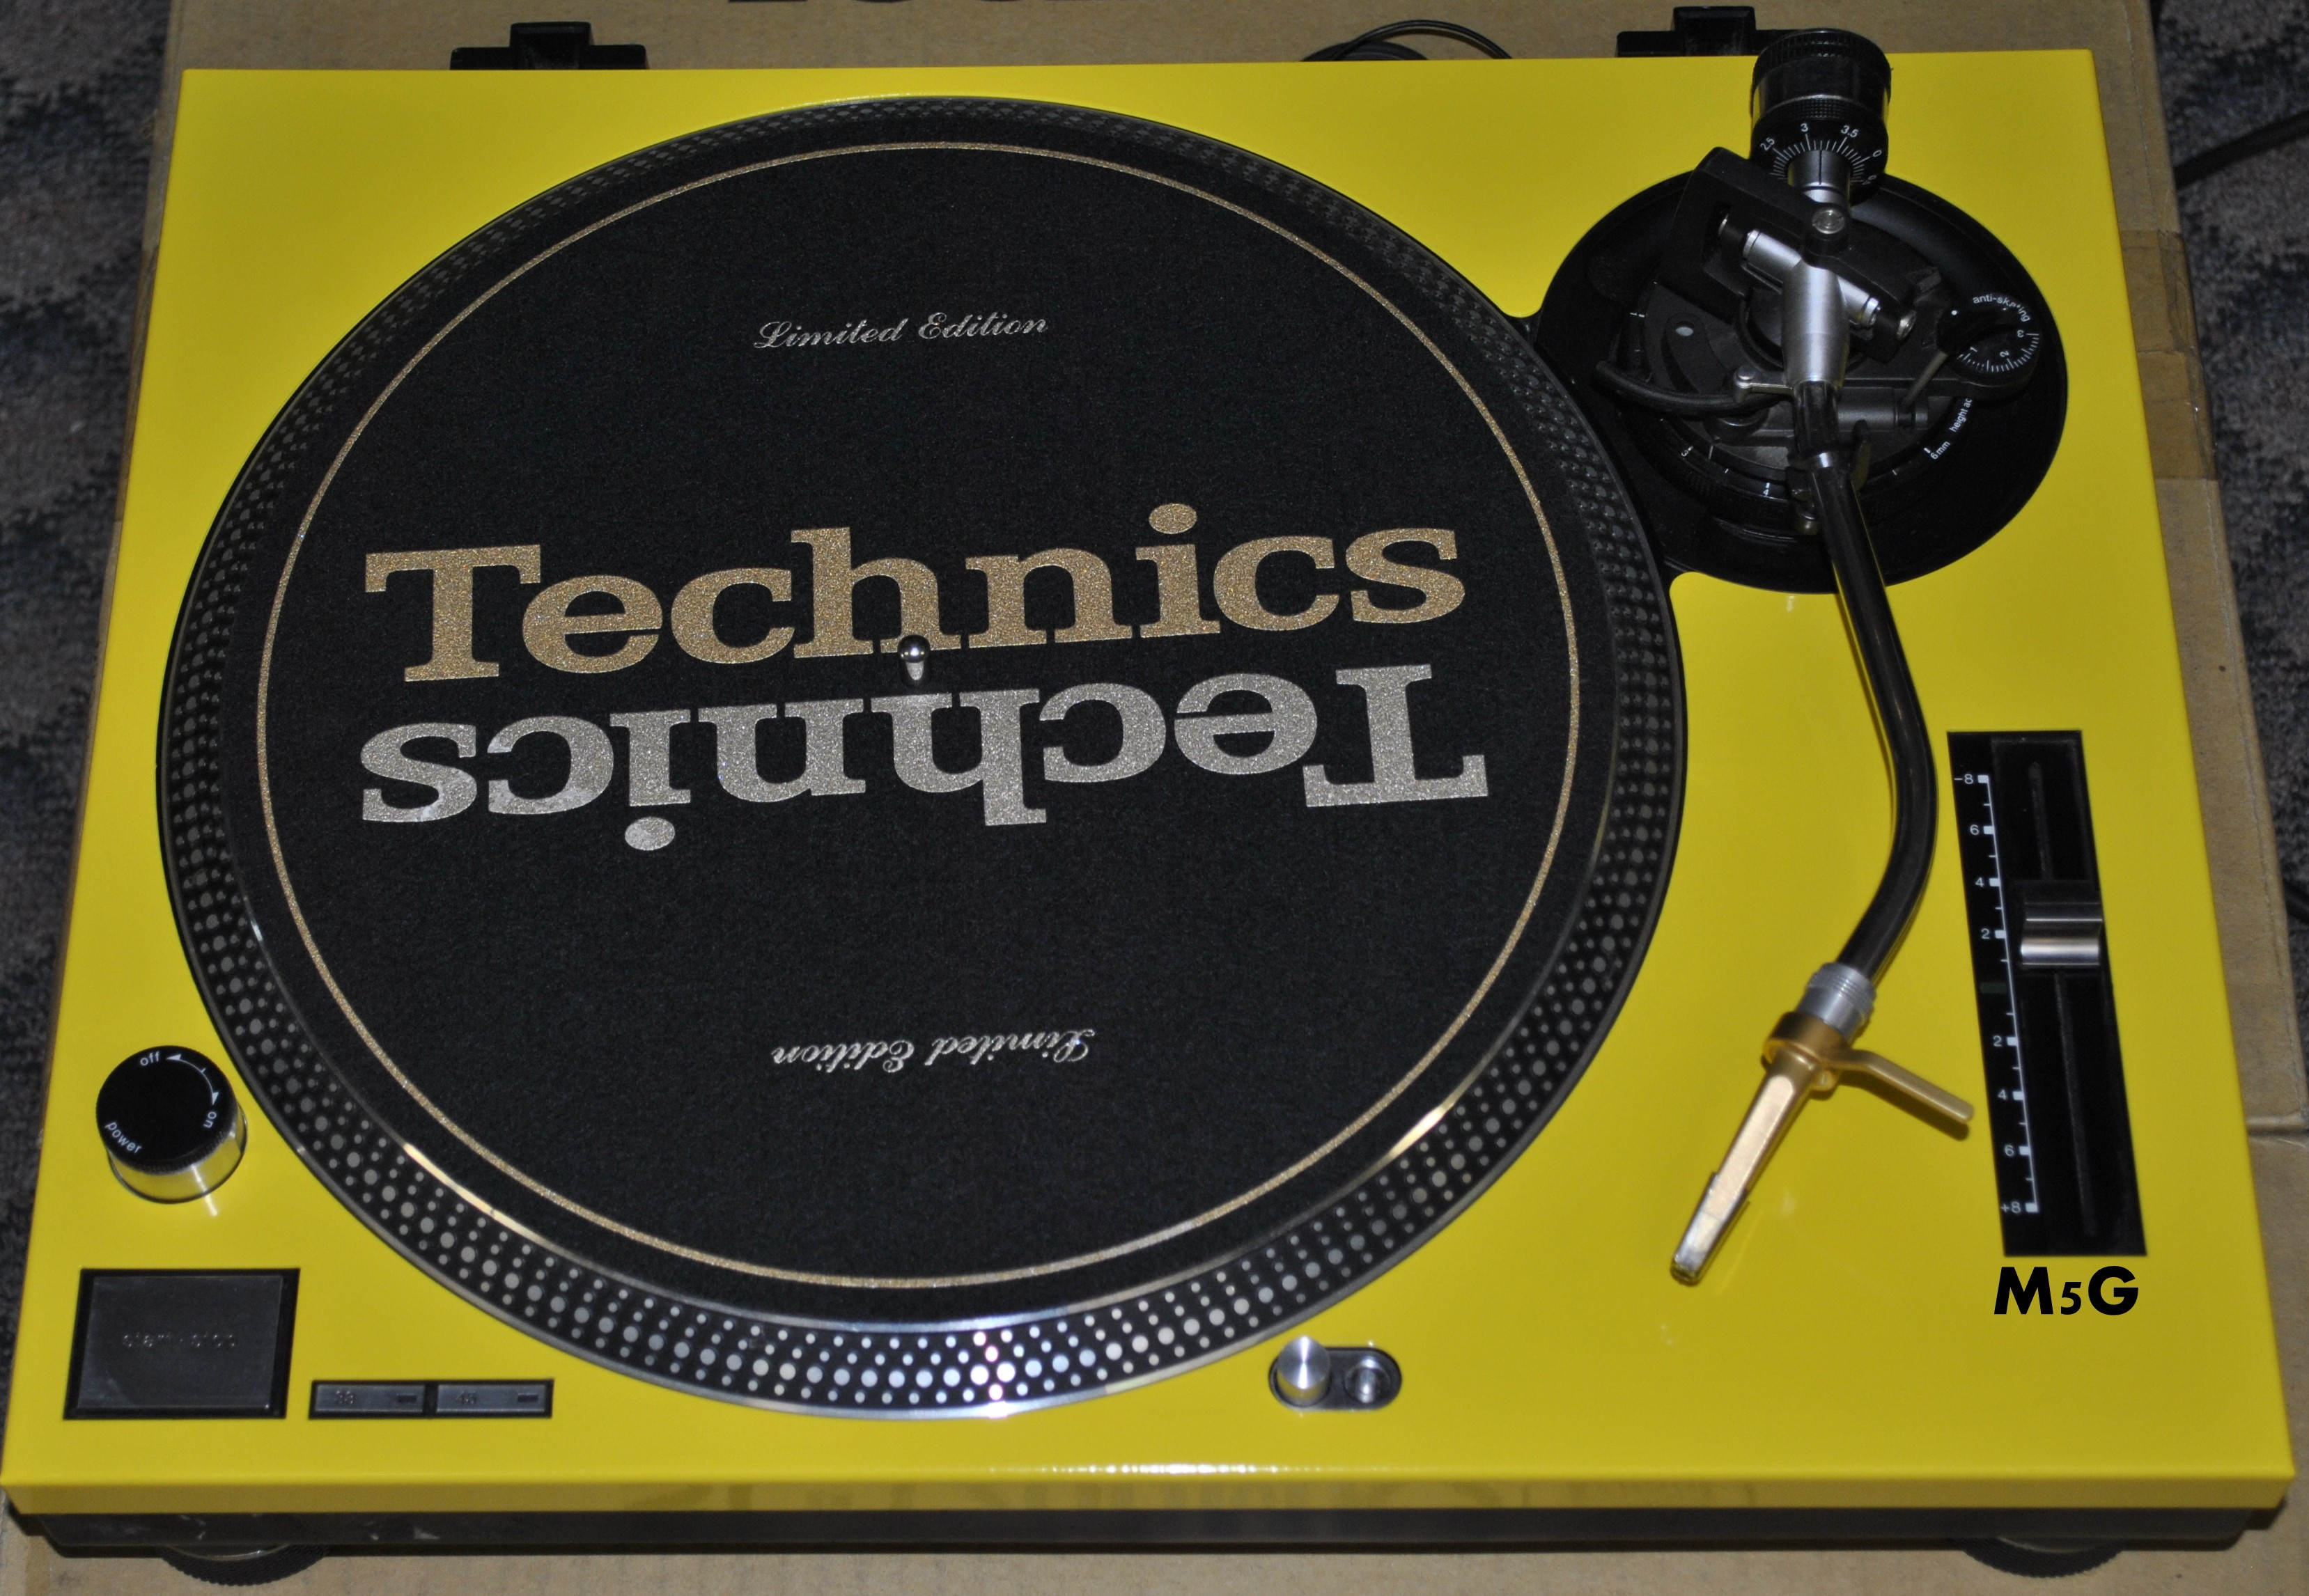 Technics Face Plate in Yellow for Technics SL-1200 / SL-1210 M5G Turntable